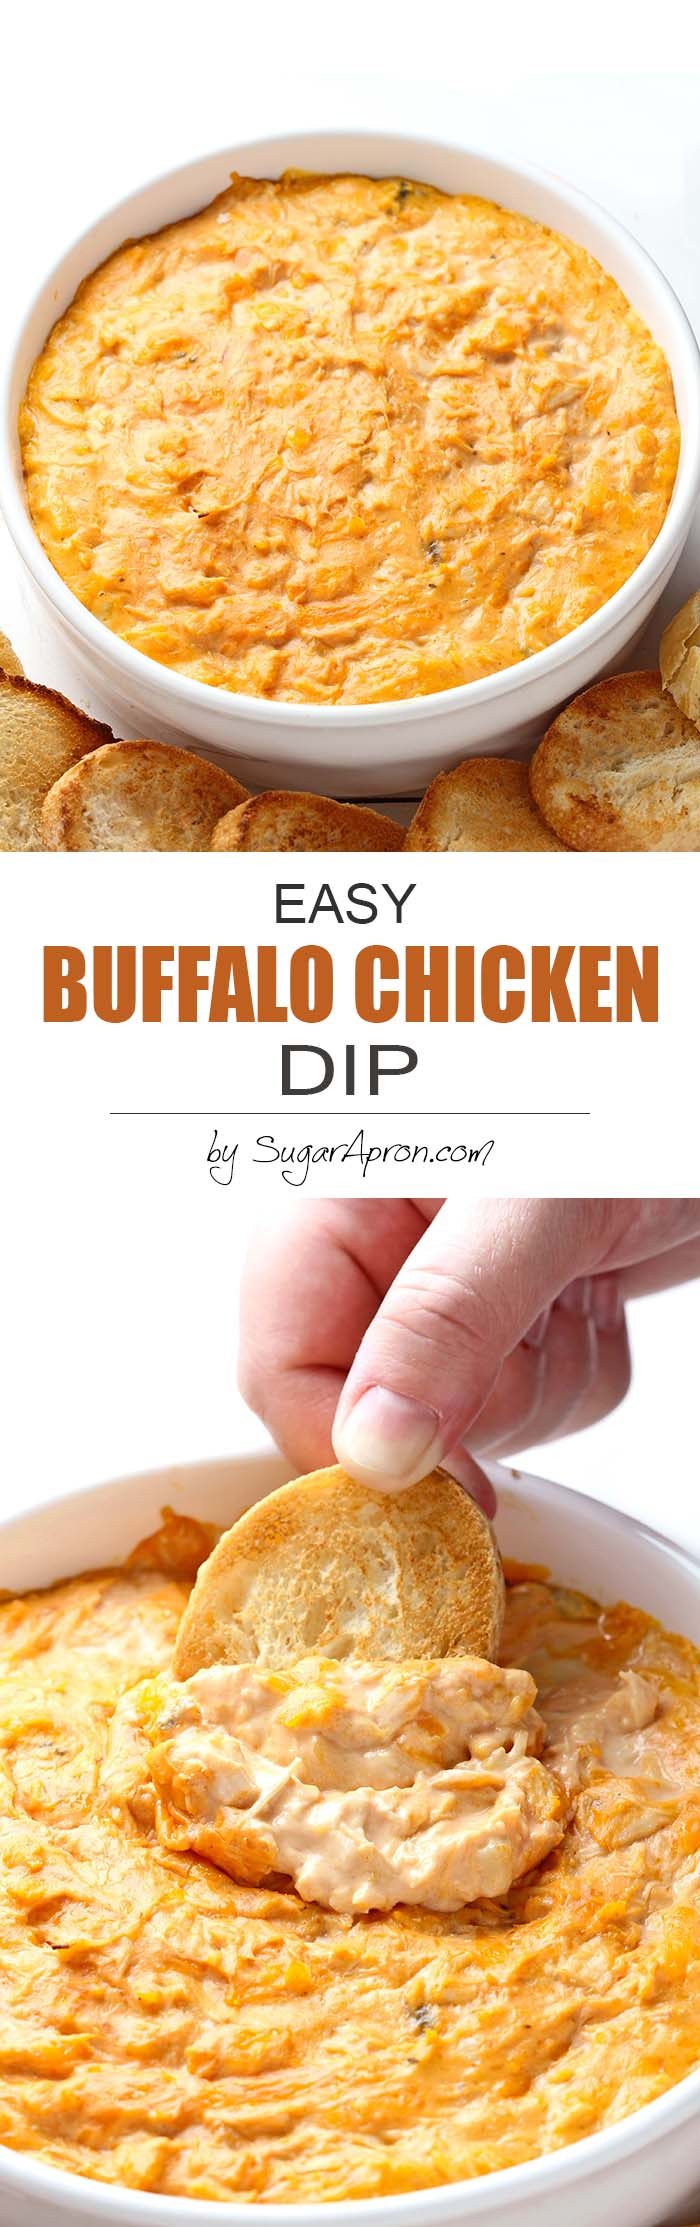 Buffalo Dip Chicken Easy